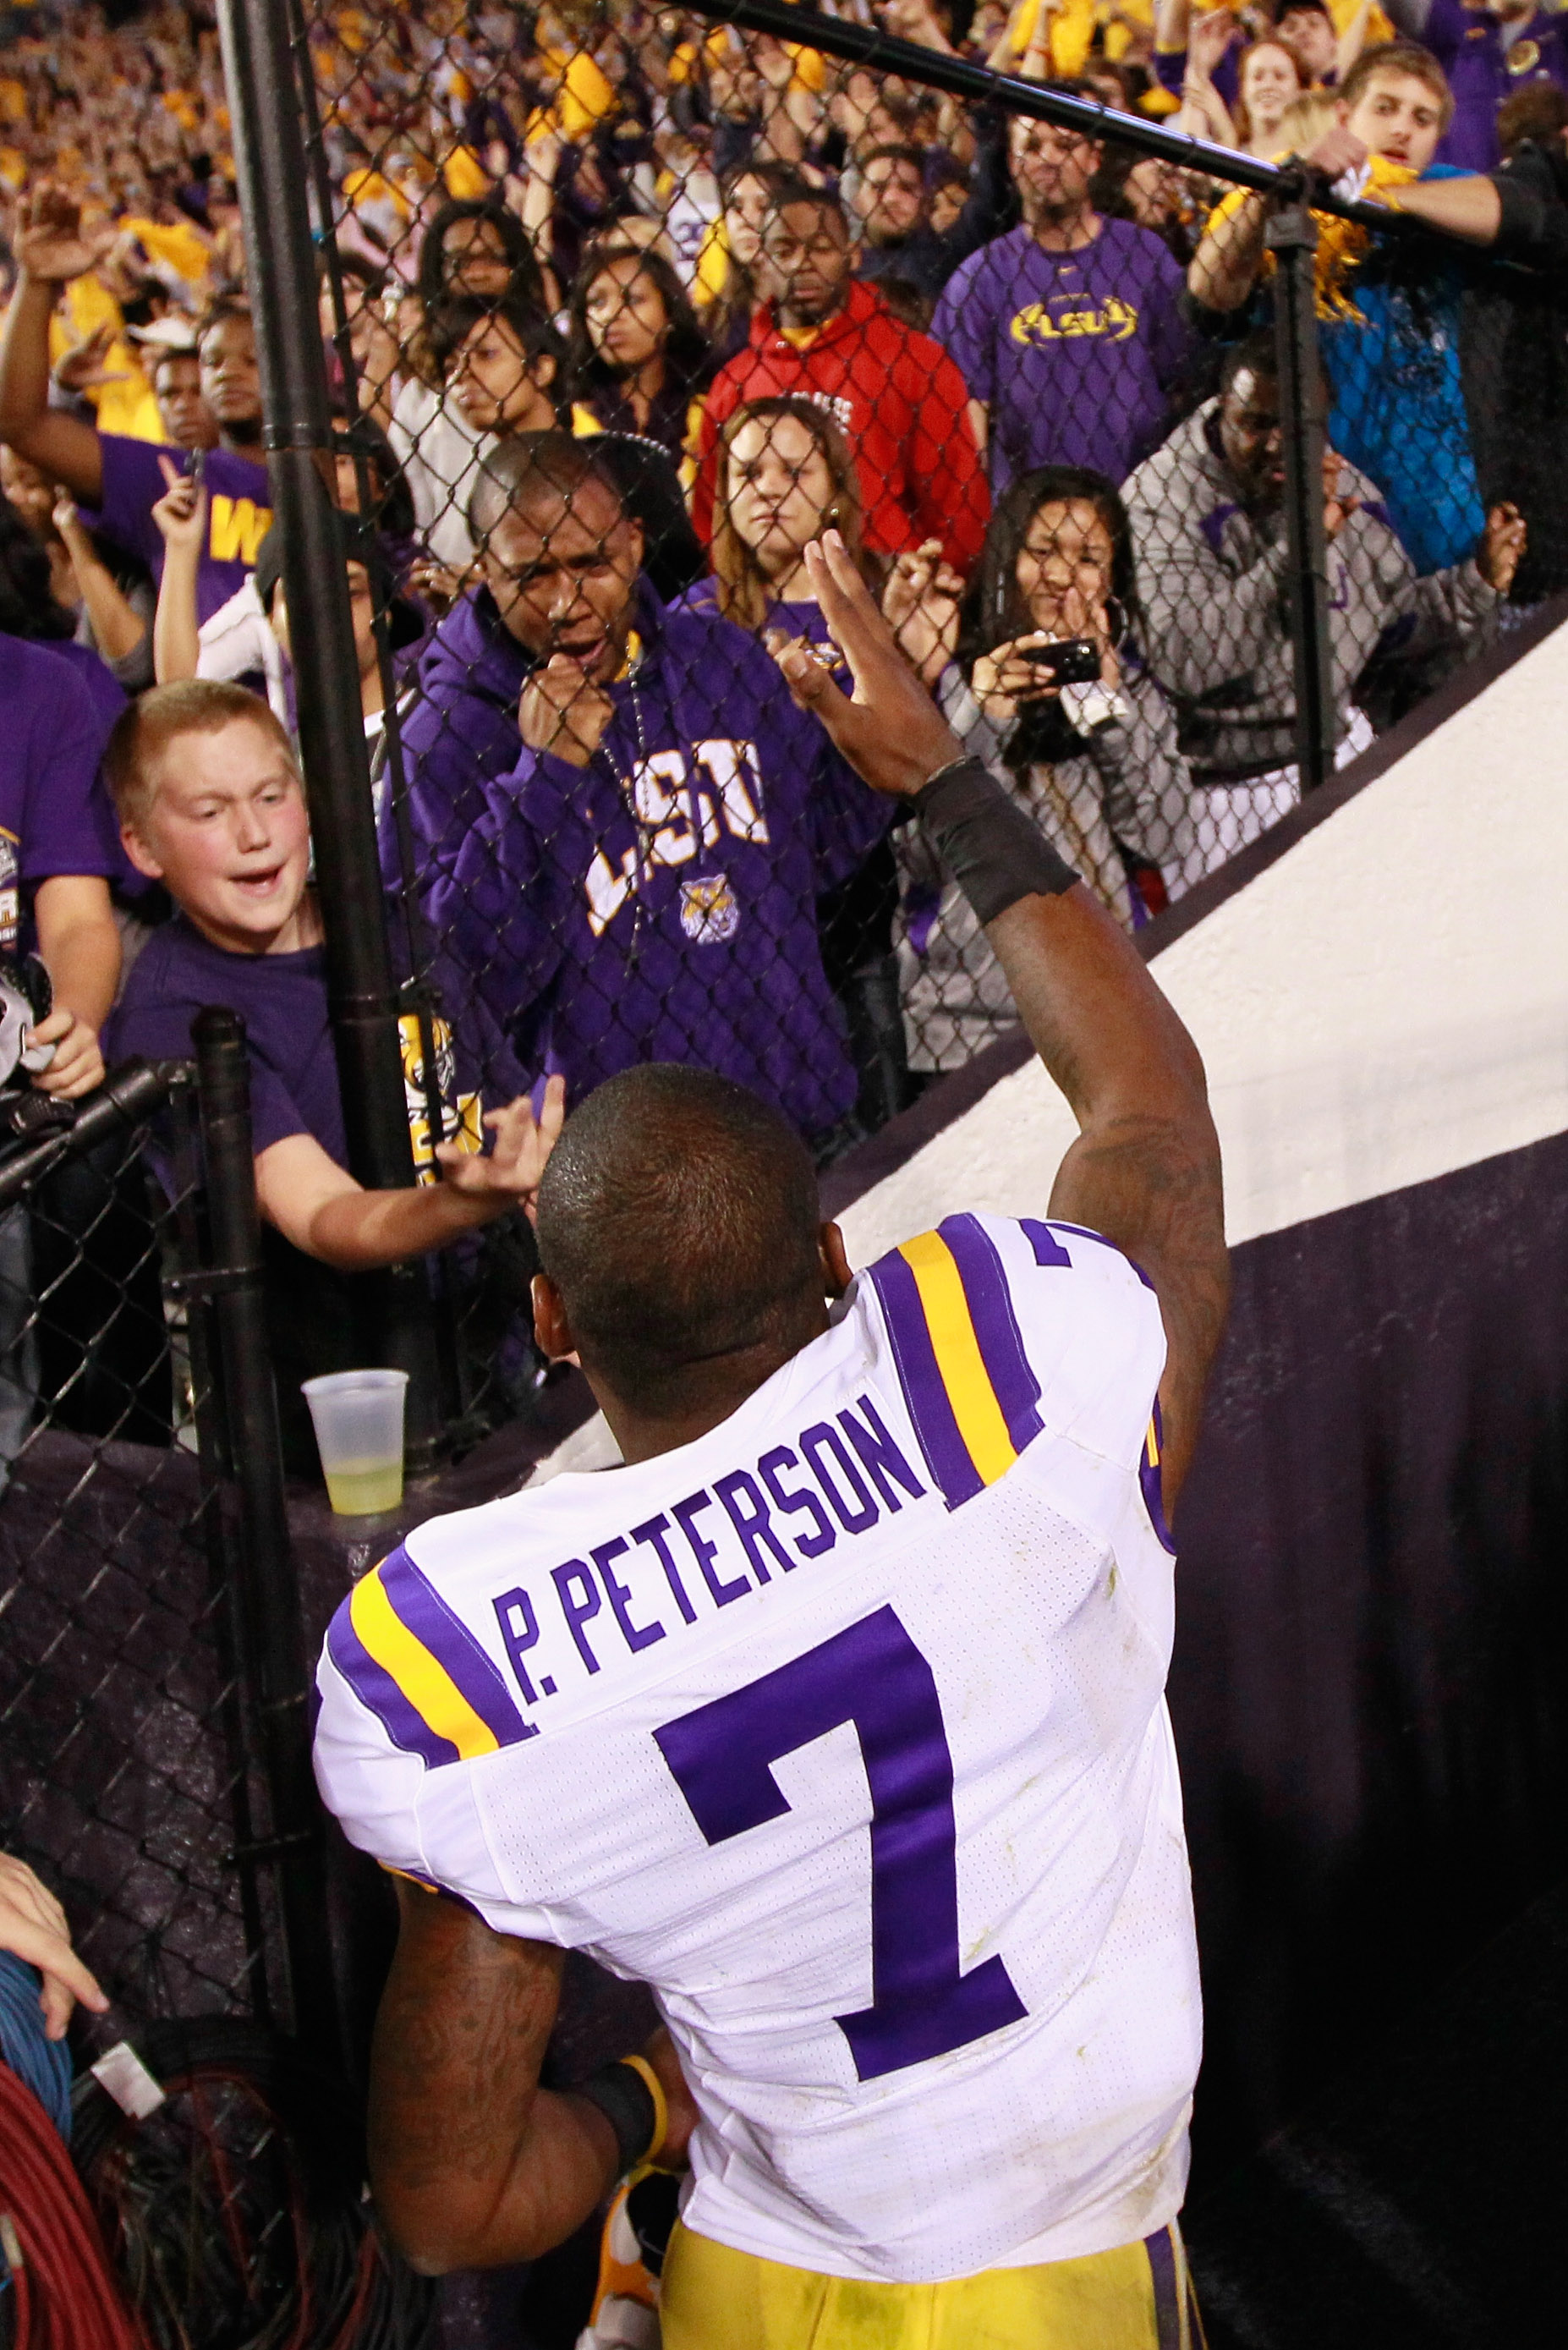 BATON ROUGE, LA - NOVEMBER 20:  Patrick Peterson #7 of the Louisiana State University Tigers reacts after their 43-36 win over the Ole Miss Rebels at Tiger Stadium on November 20, 2010 in Baton Rouge, Louisiana.  (Photo by Kevin C. Cox/Getty Images)